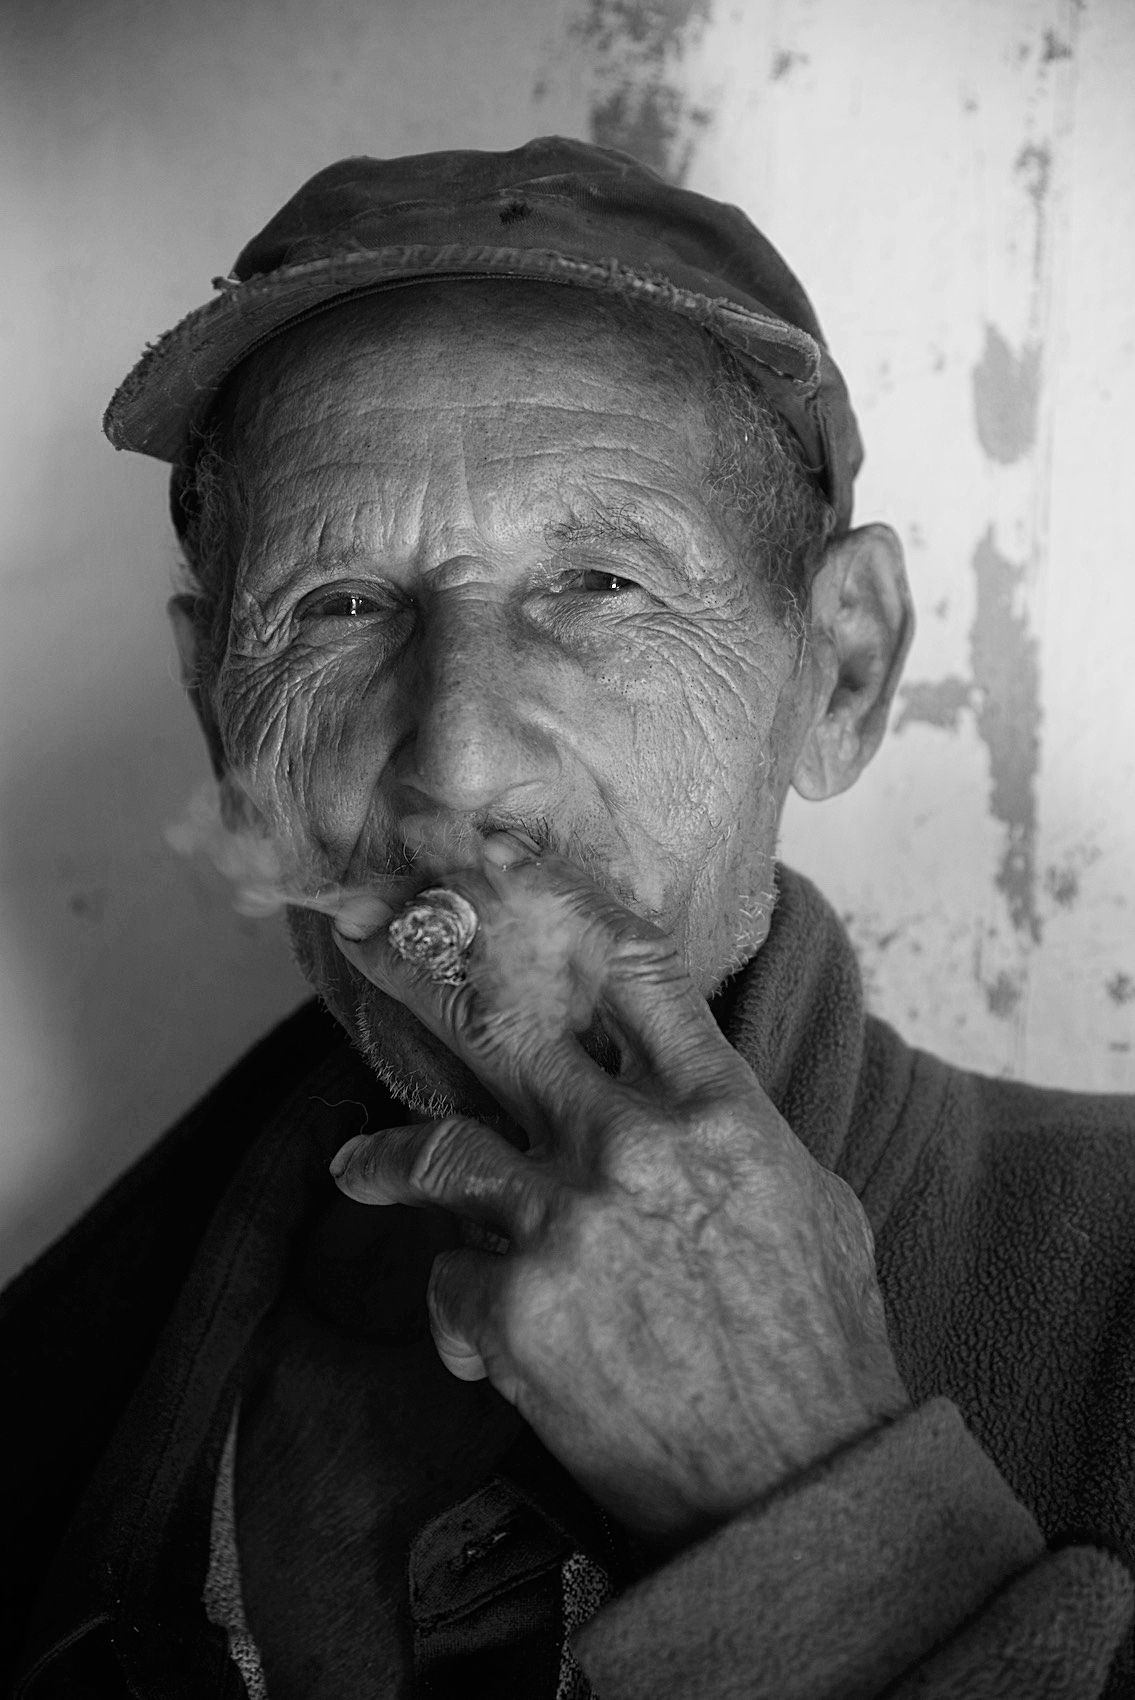 older man portrait